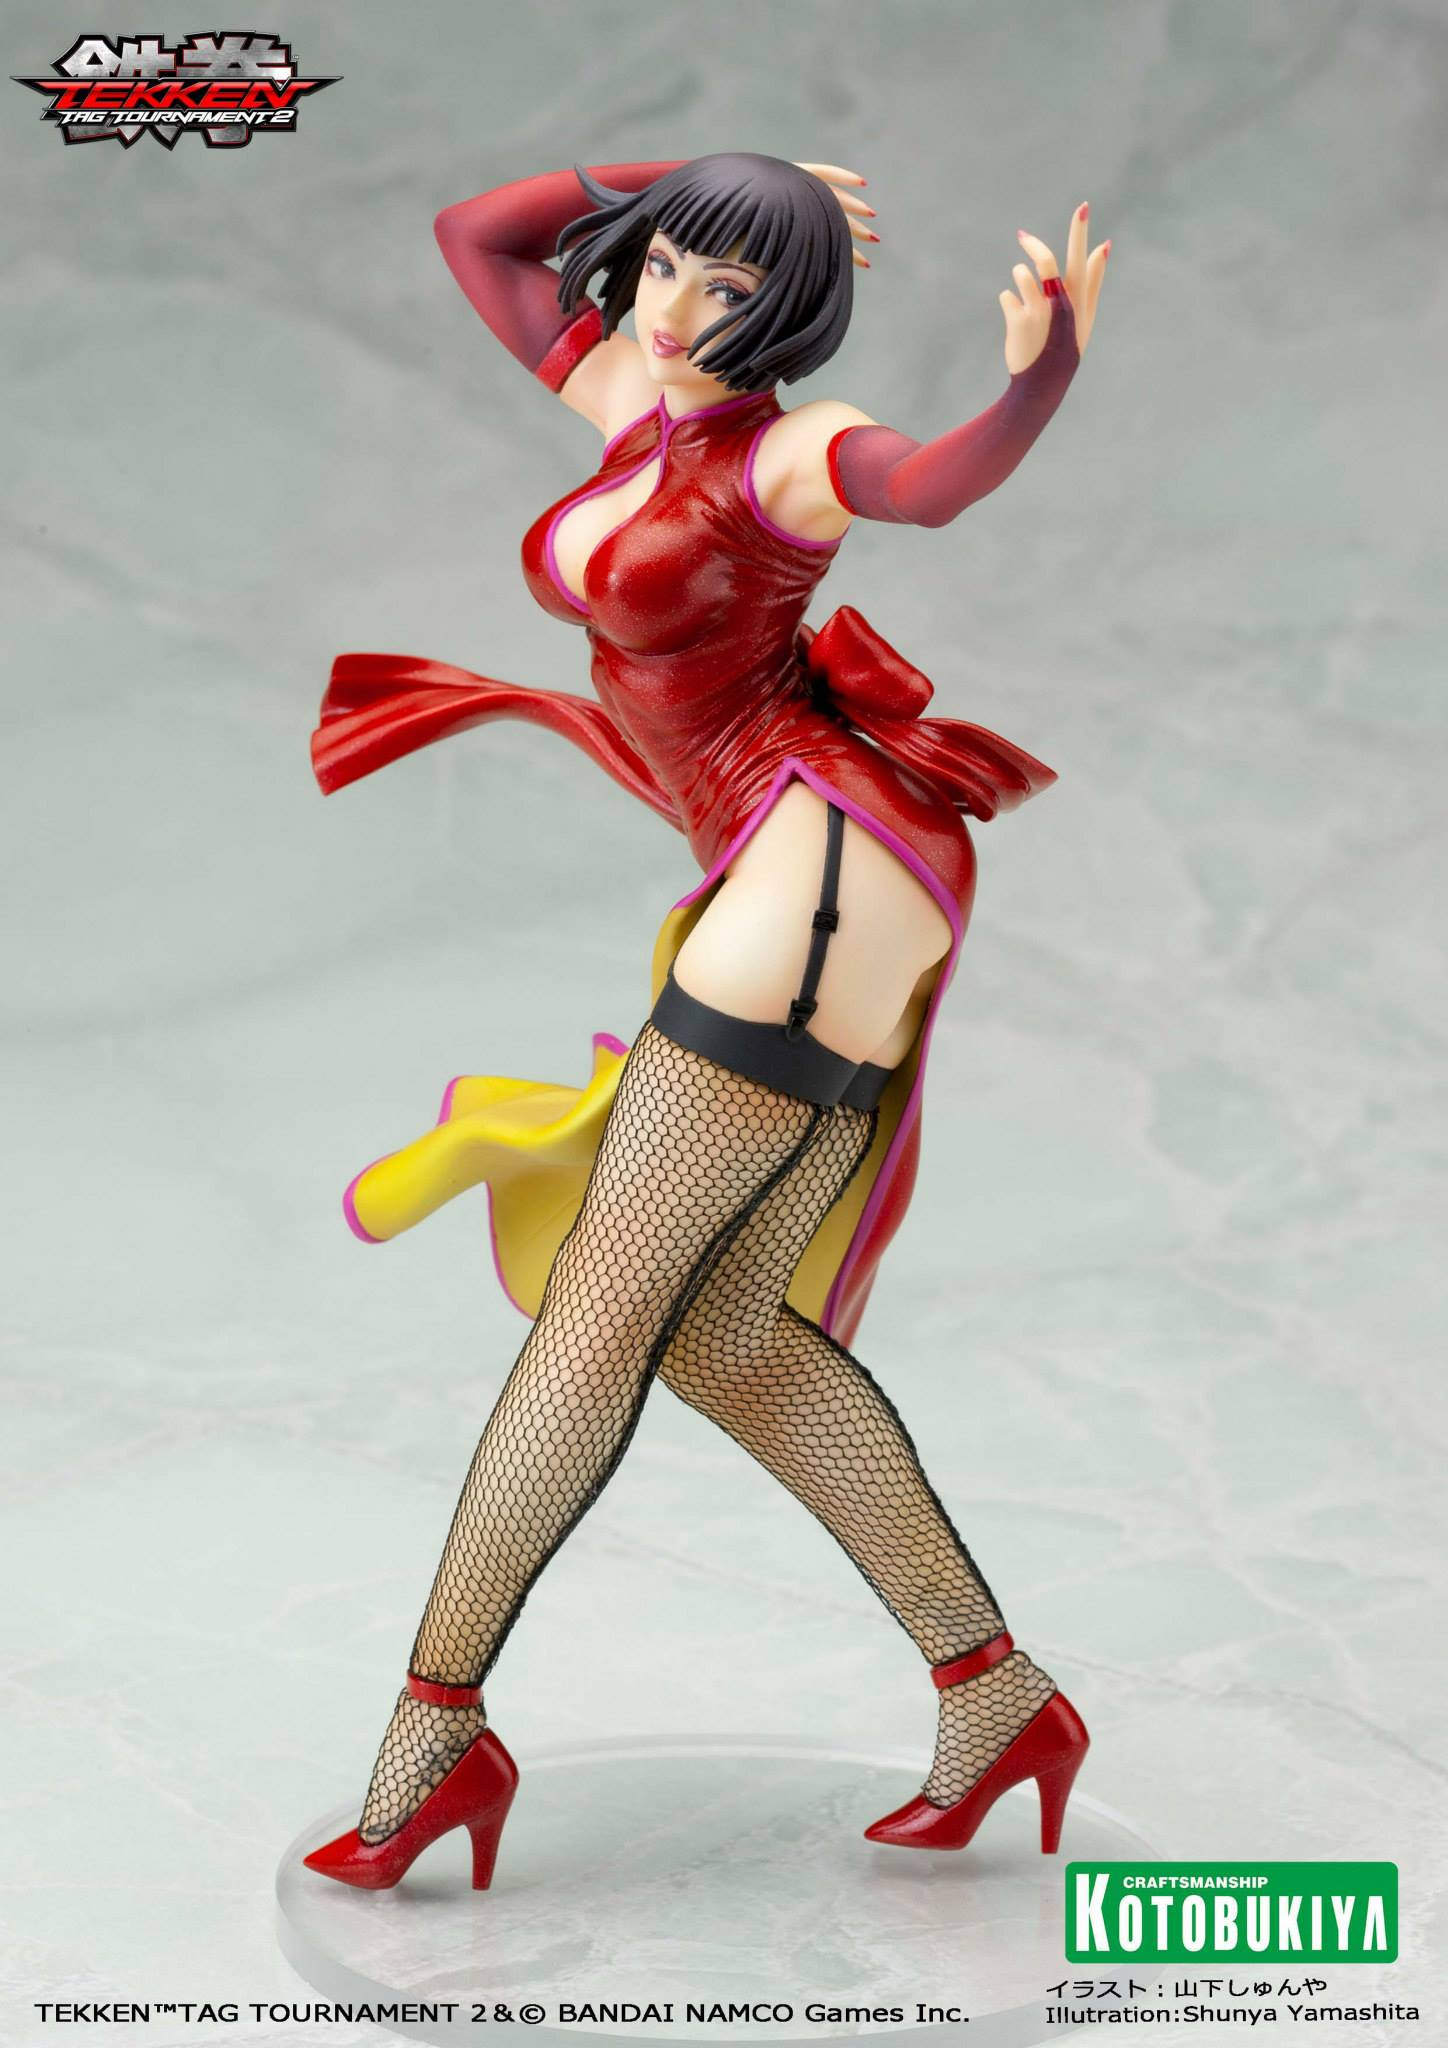 anna-williams-tekken-tag-tournament-2-bishoujo-kotobukiya-statue-1